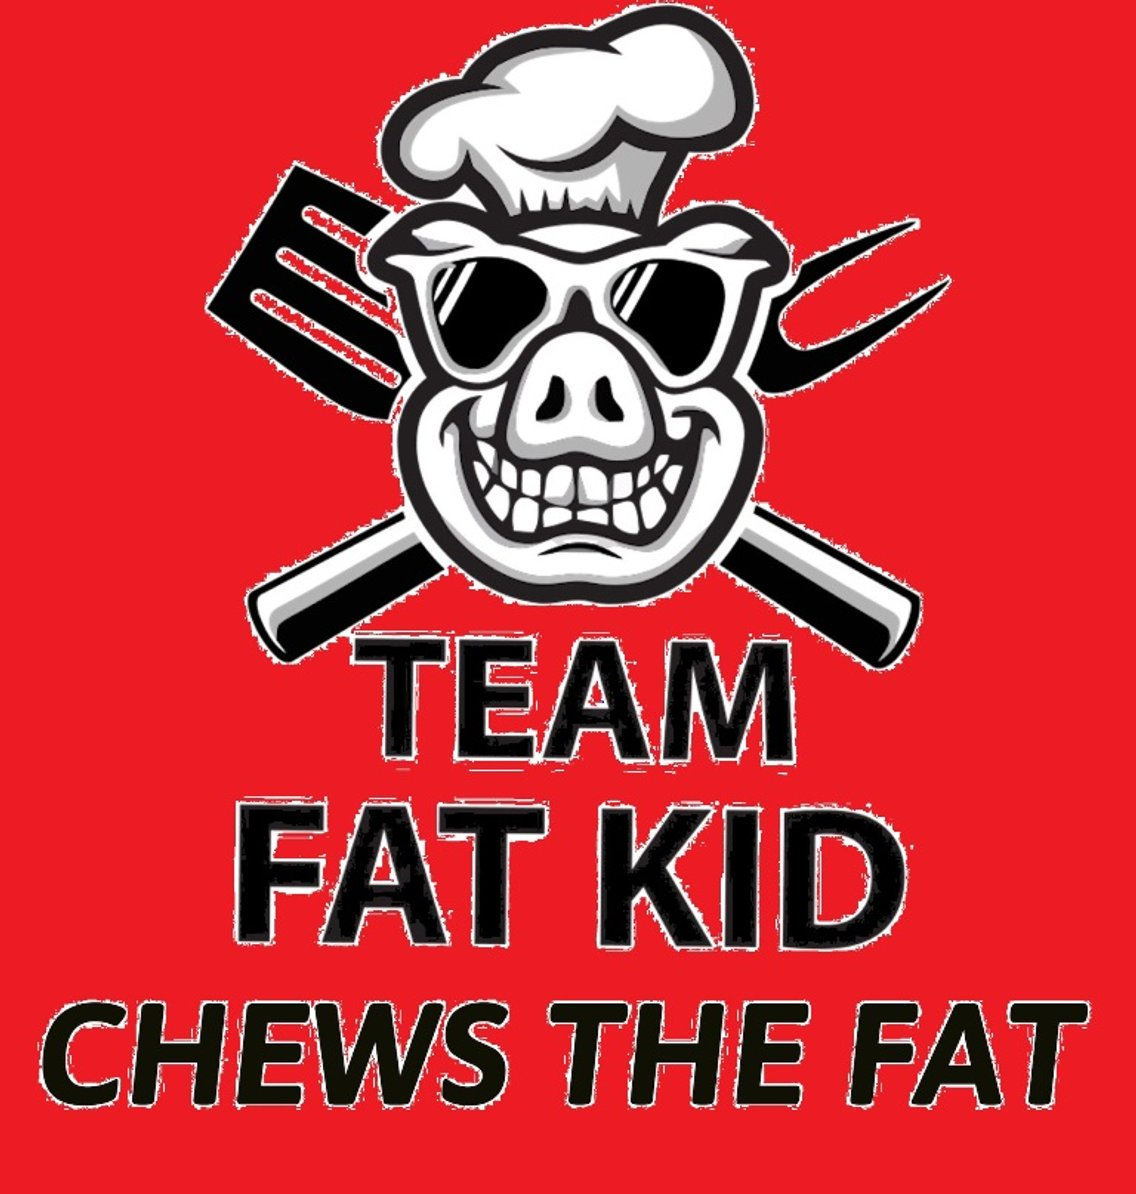 Team Fat Kid Chews The Fat - Cover Image